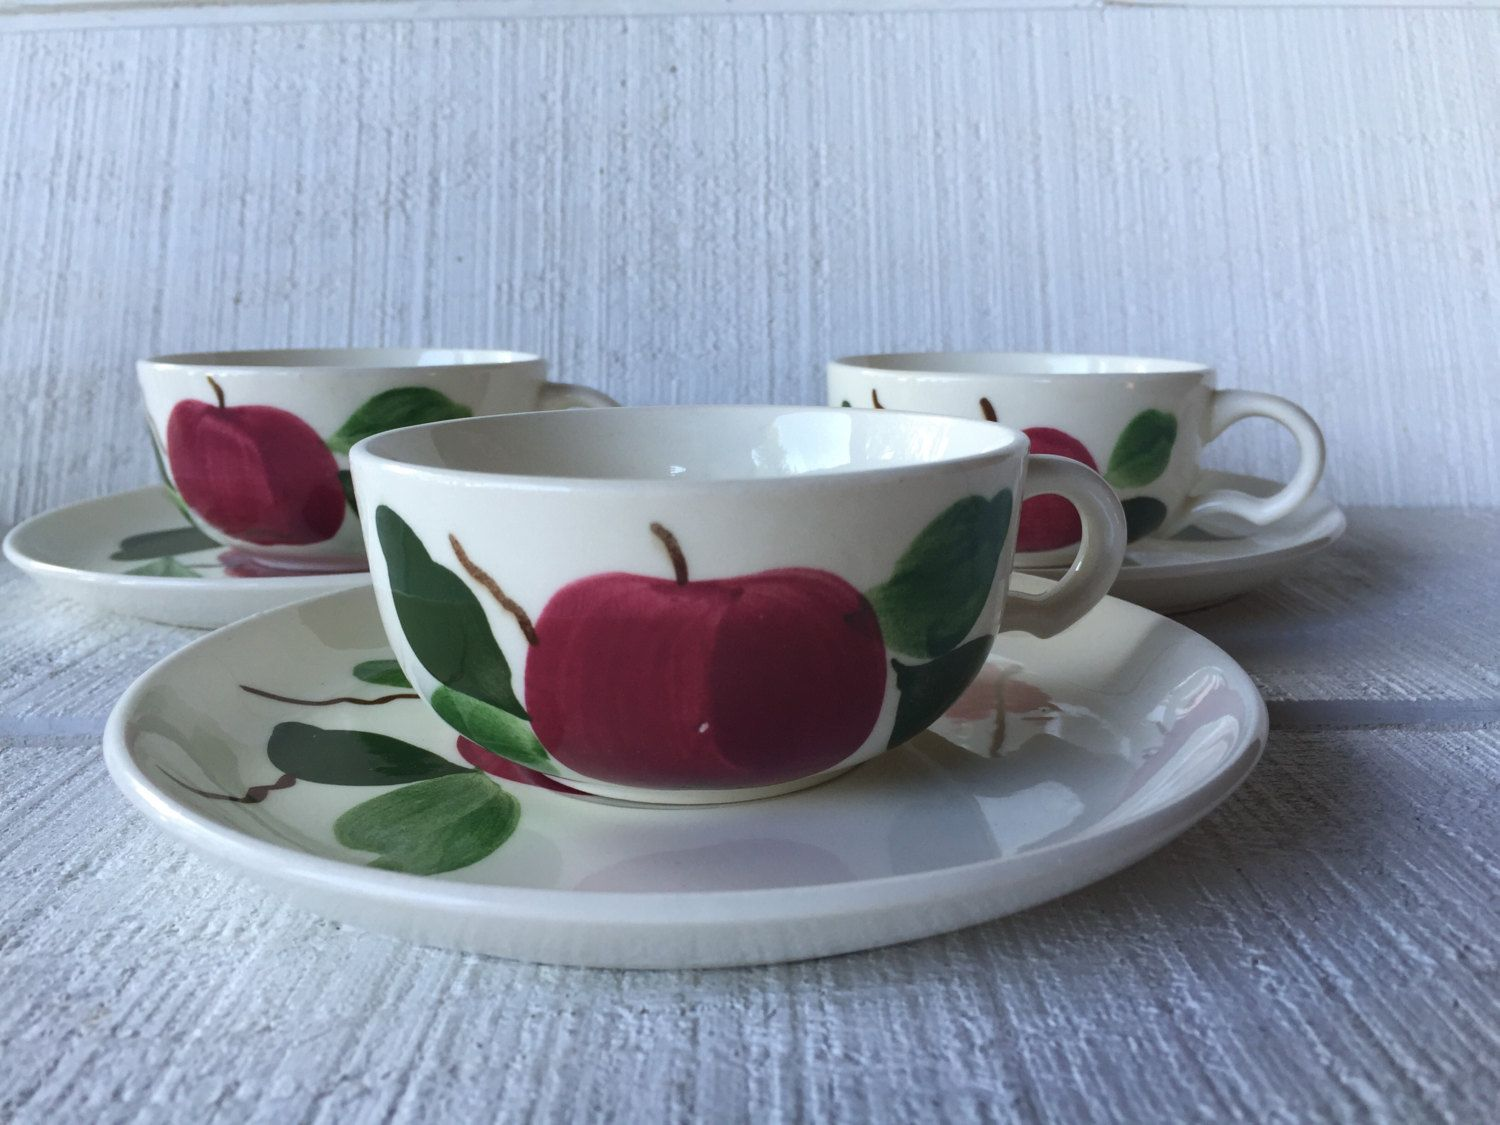 Heritage Ware by Stetson Vintage ~Hand-painted Underglaze Bone China Tea Cup And Saucer Set